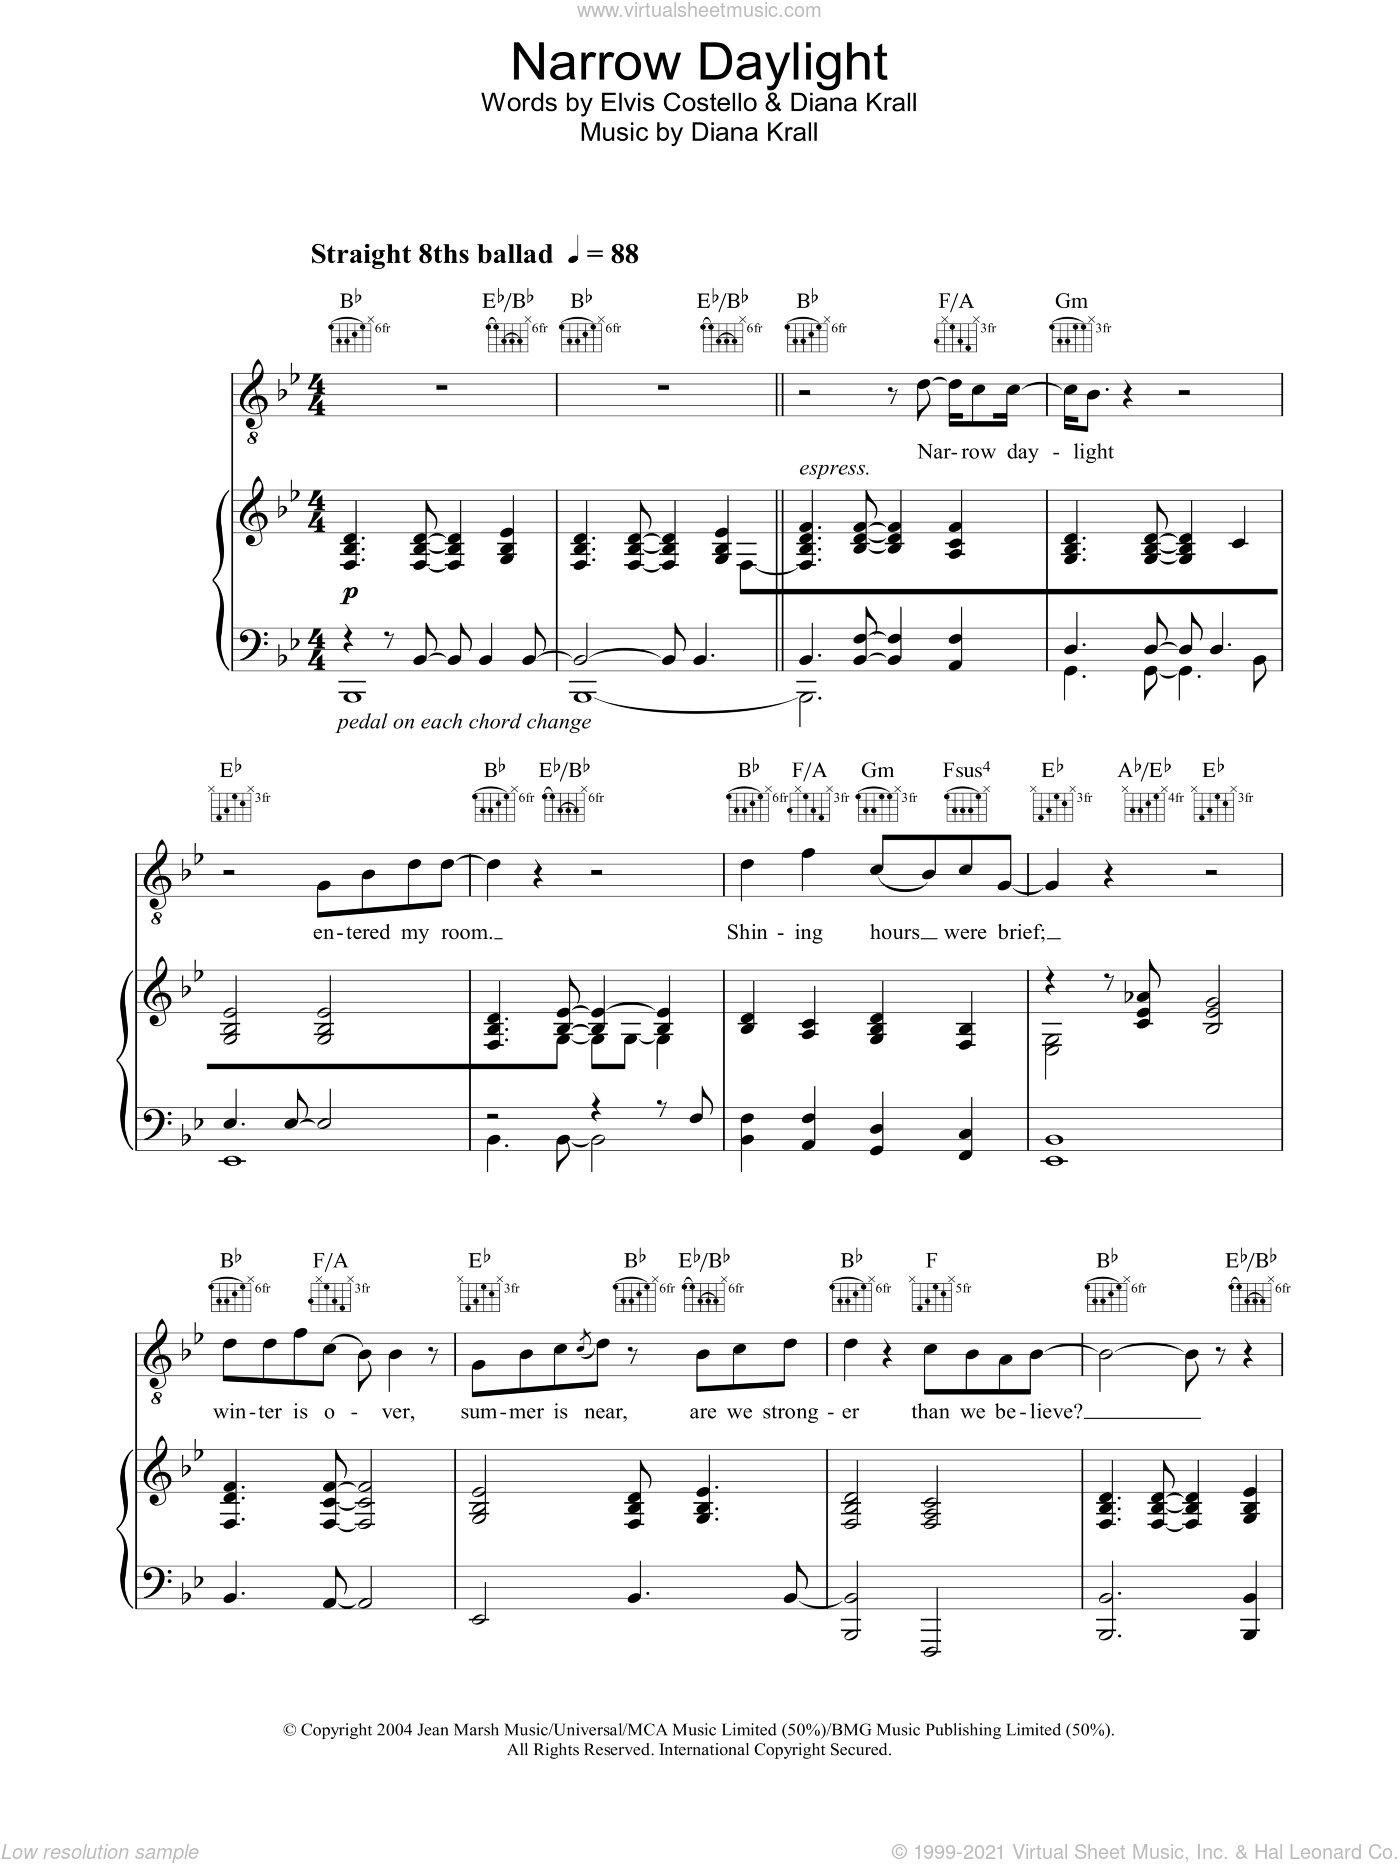 Narrow Daylight sheet music for voice, piano or guitar by Diana Krall. Score Image Preview.